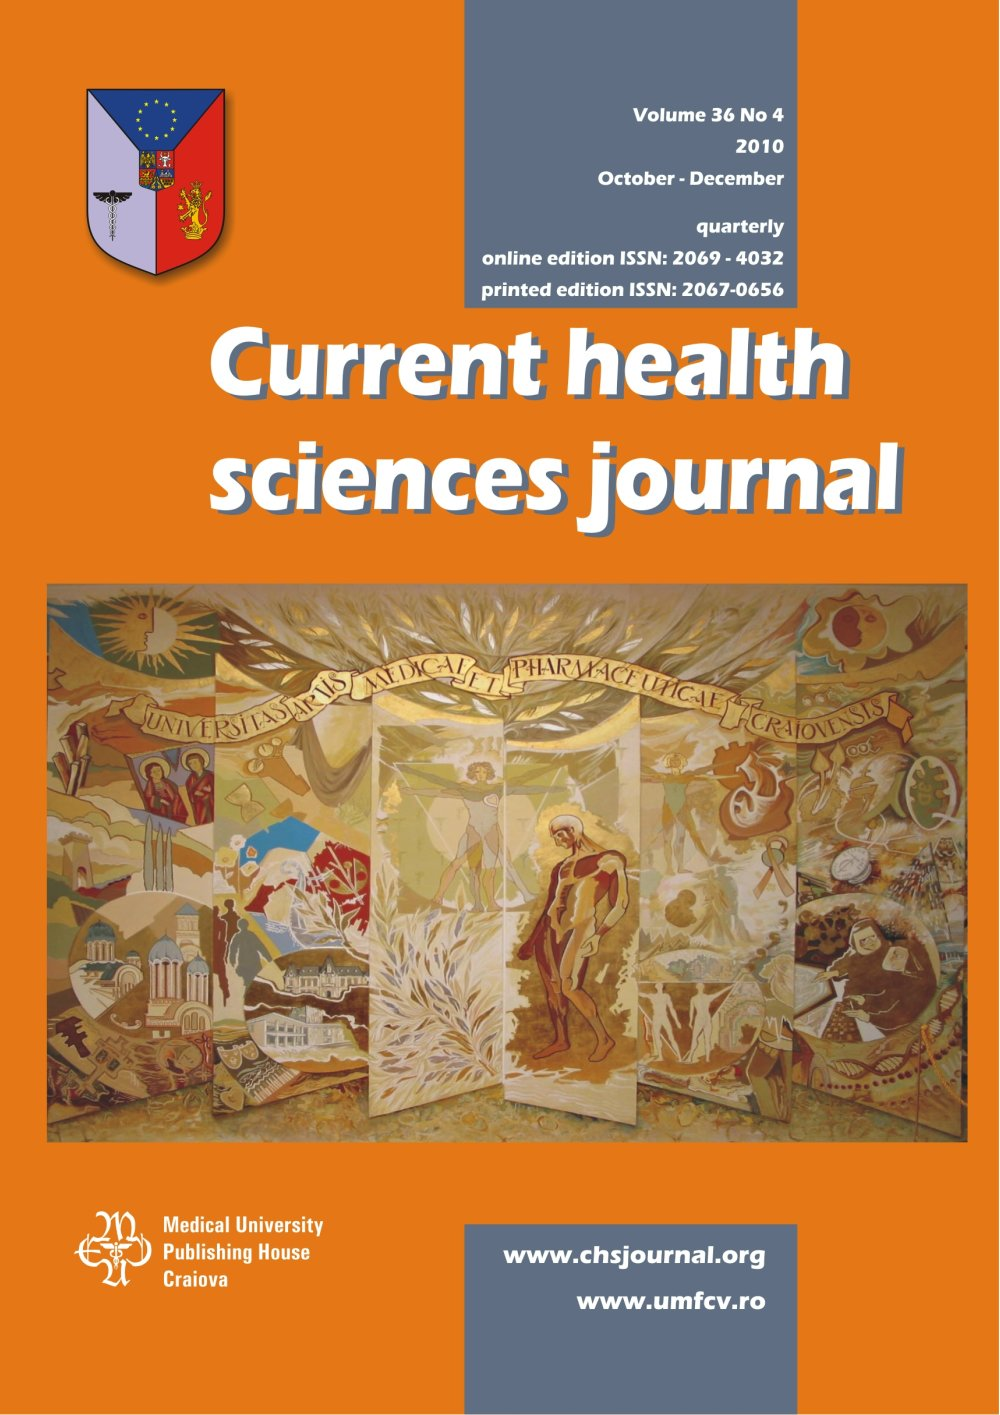 Current Health Sciences Journal, vol. 36 no. 4, 2010